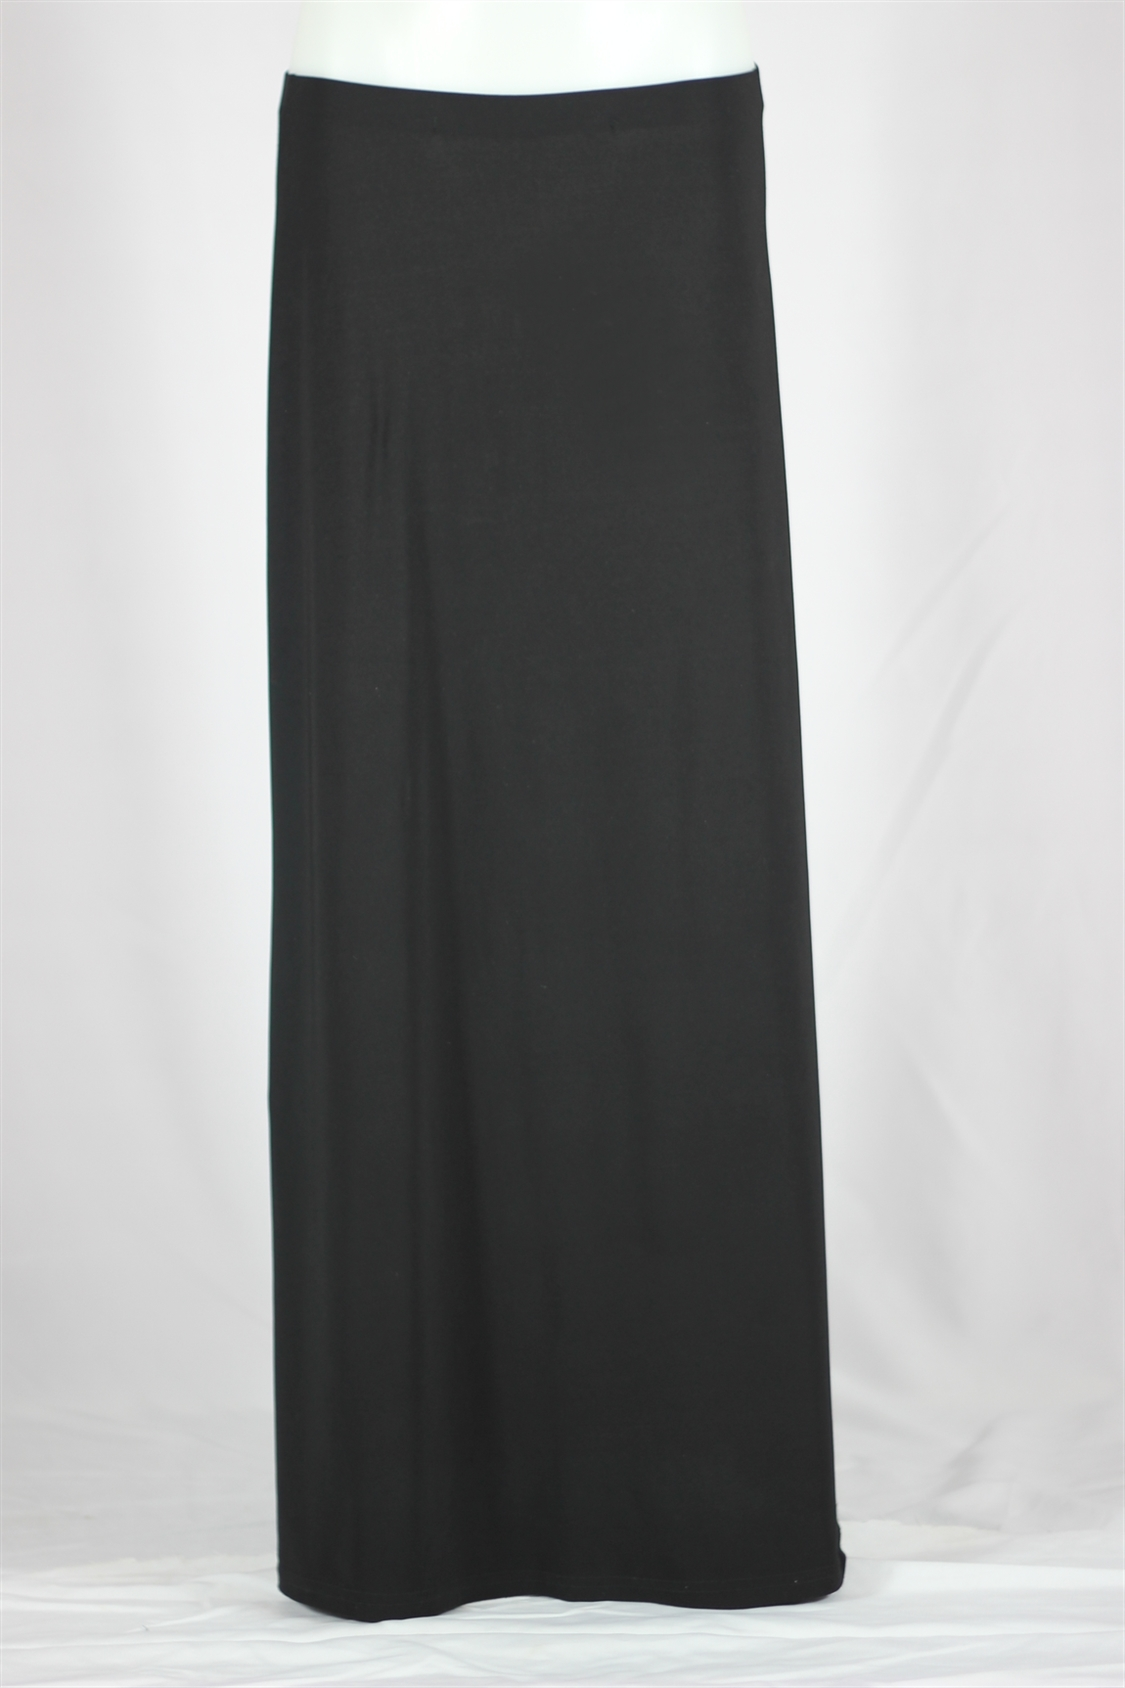 Long Black Flowing Skirt, Sizes 0-16